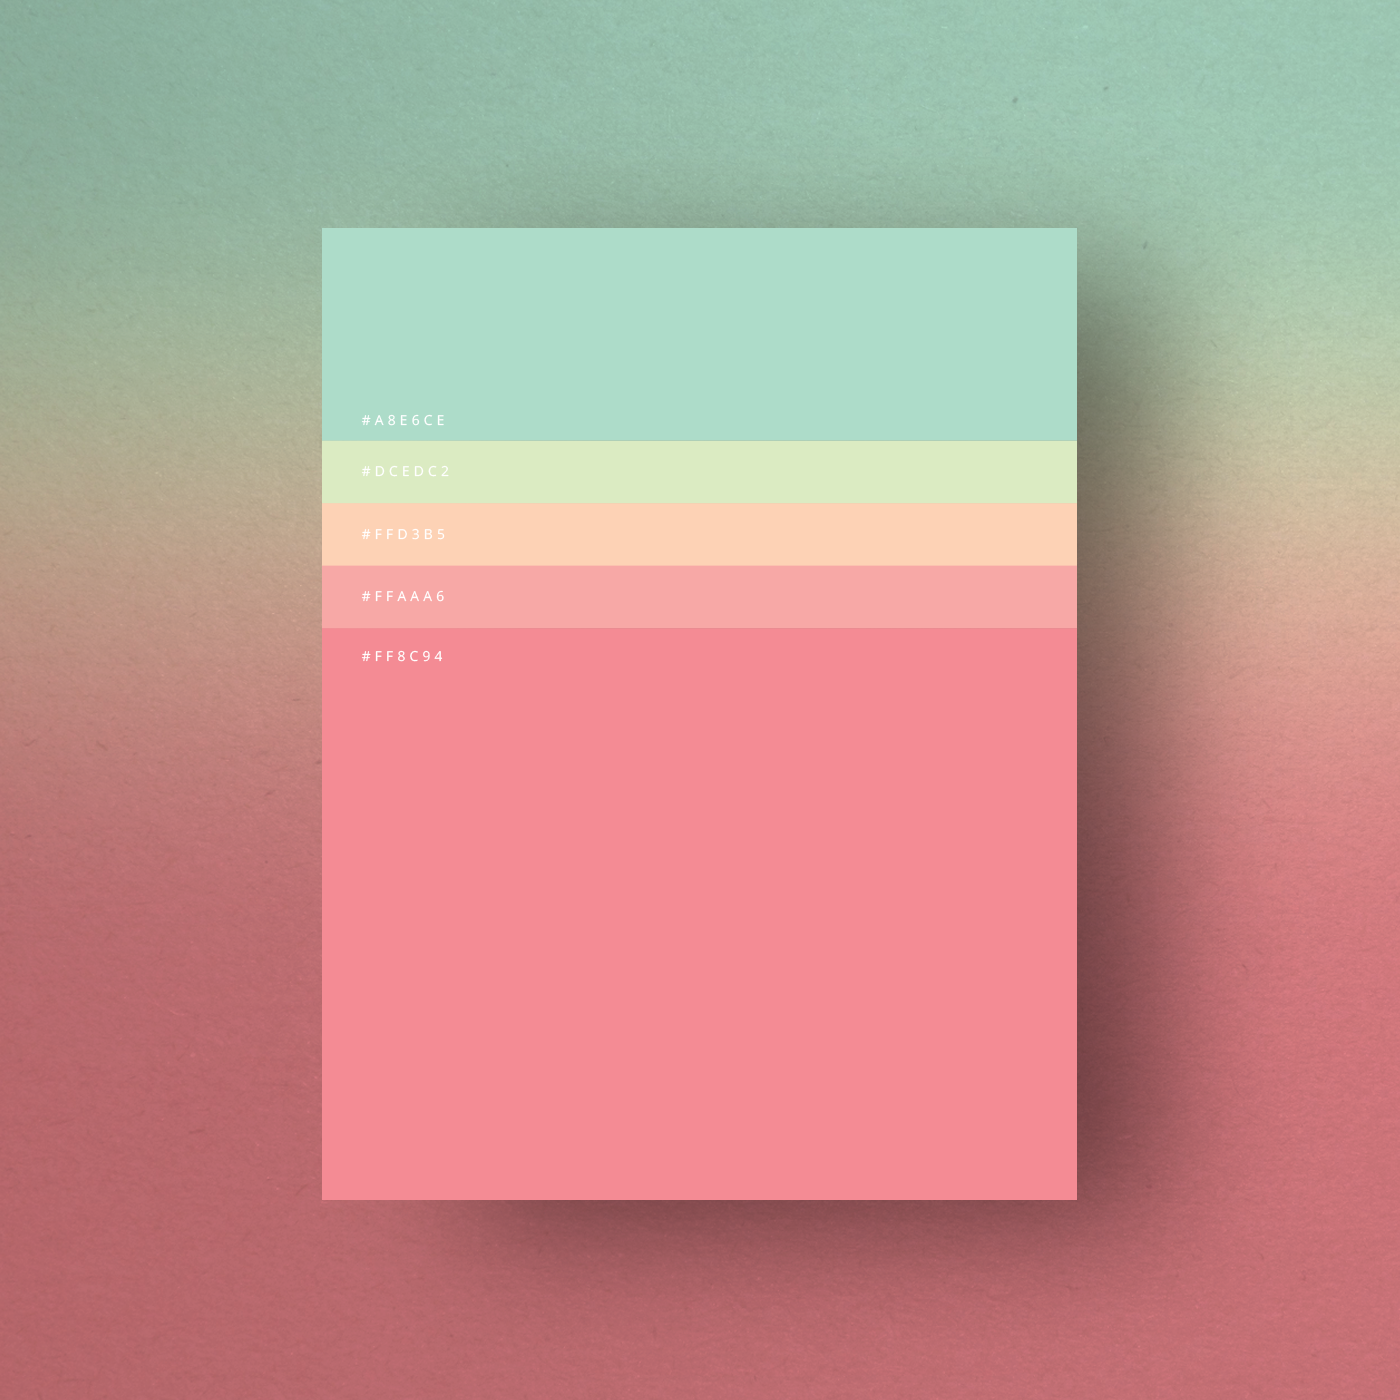 Beautiful Design Crush | A Minimalist Poster Color Palette intended for Lovely Color Palette